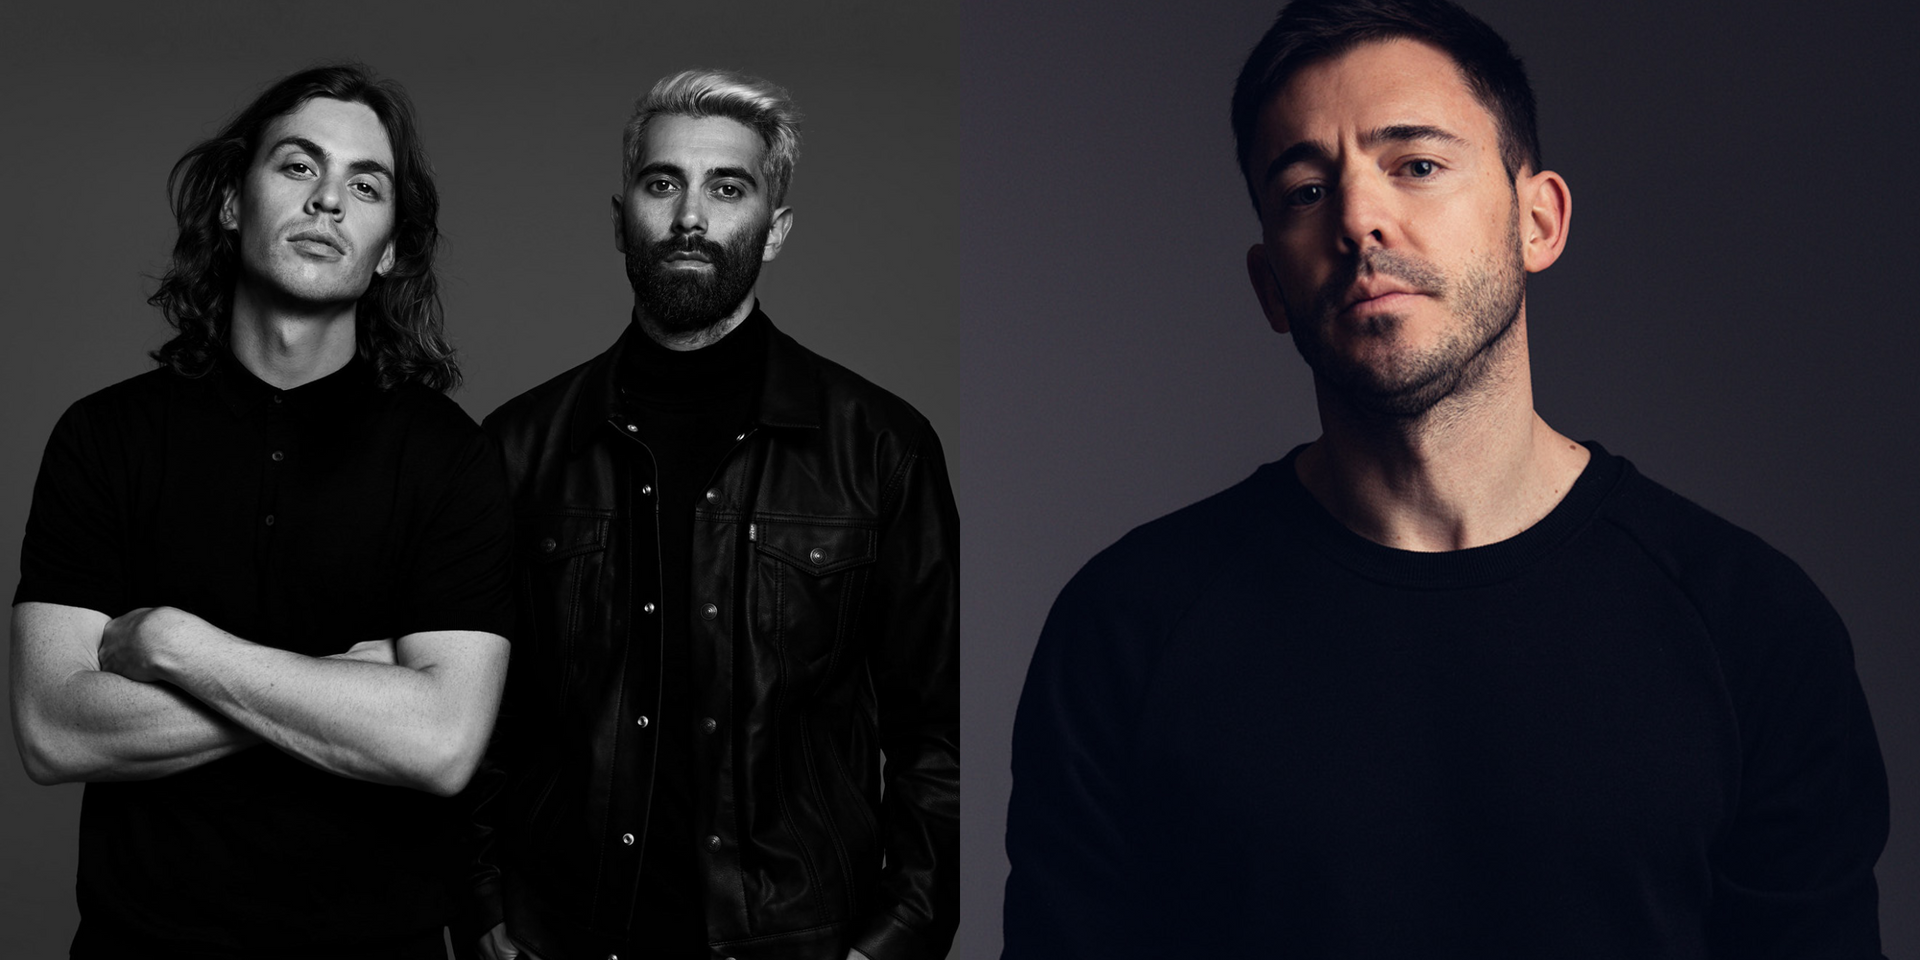 Siam Songkran Festival announces Phase 1 line-up – Darren Styles, Yellow Claw and more to perform, stage takeovers by Barong Family and Q Dance